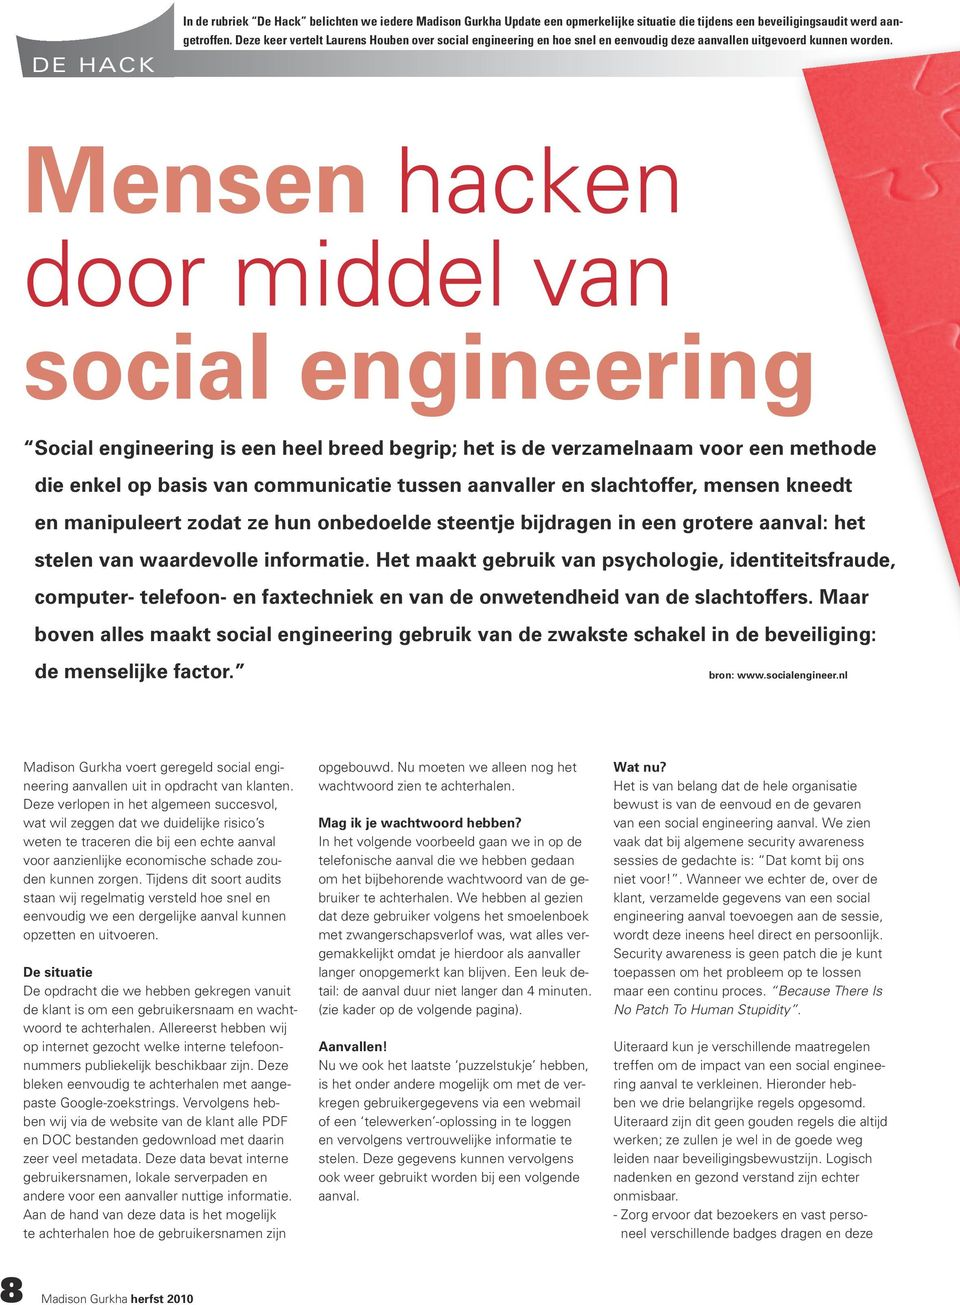 Mensen hacken door middel van social engineering social engineering is een heel breed begrip; het is de verzamelnaam voor een methode die enkel op basis van communicatie tussen aanvaller en